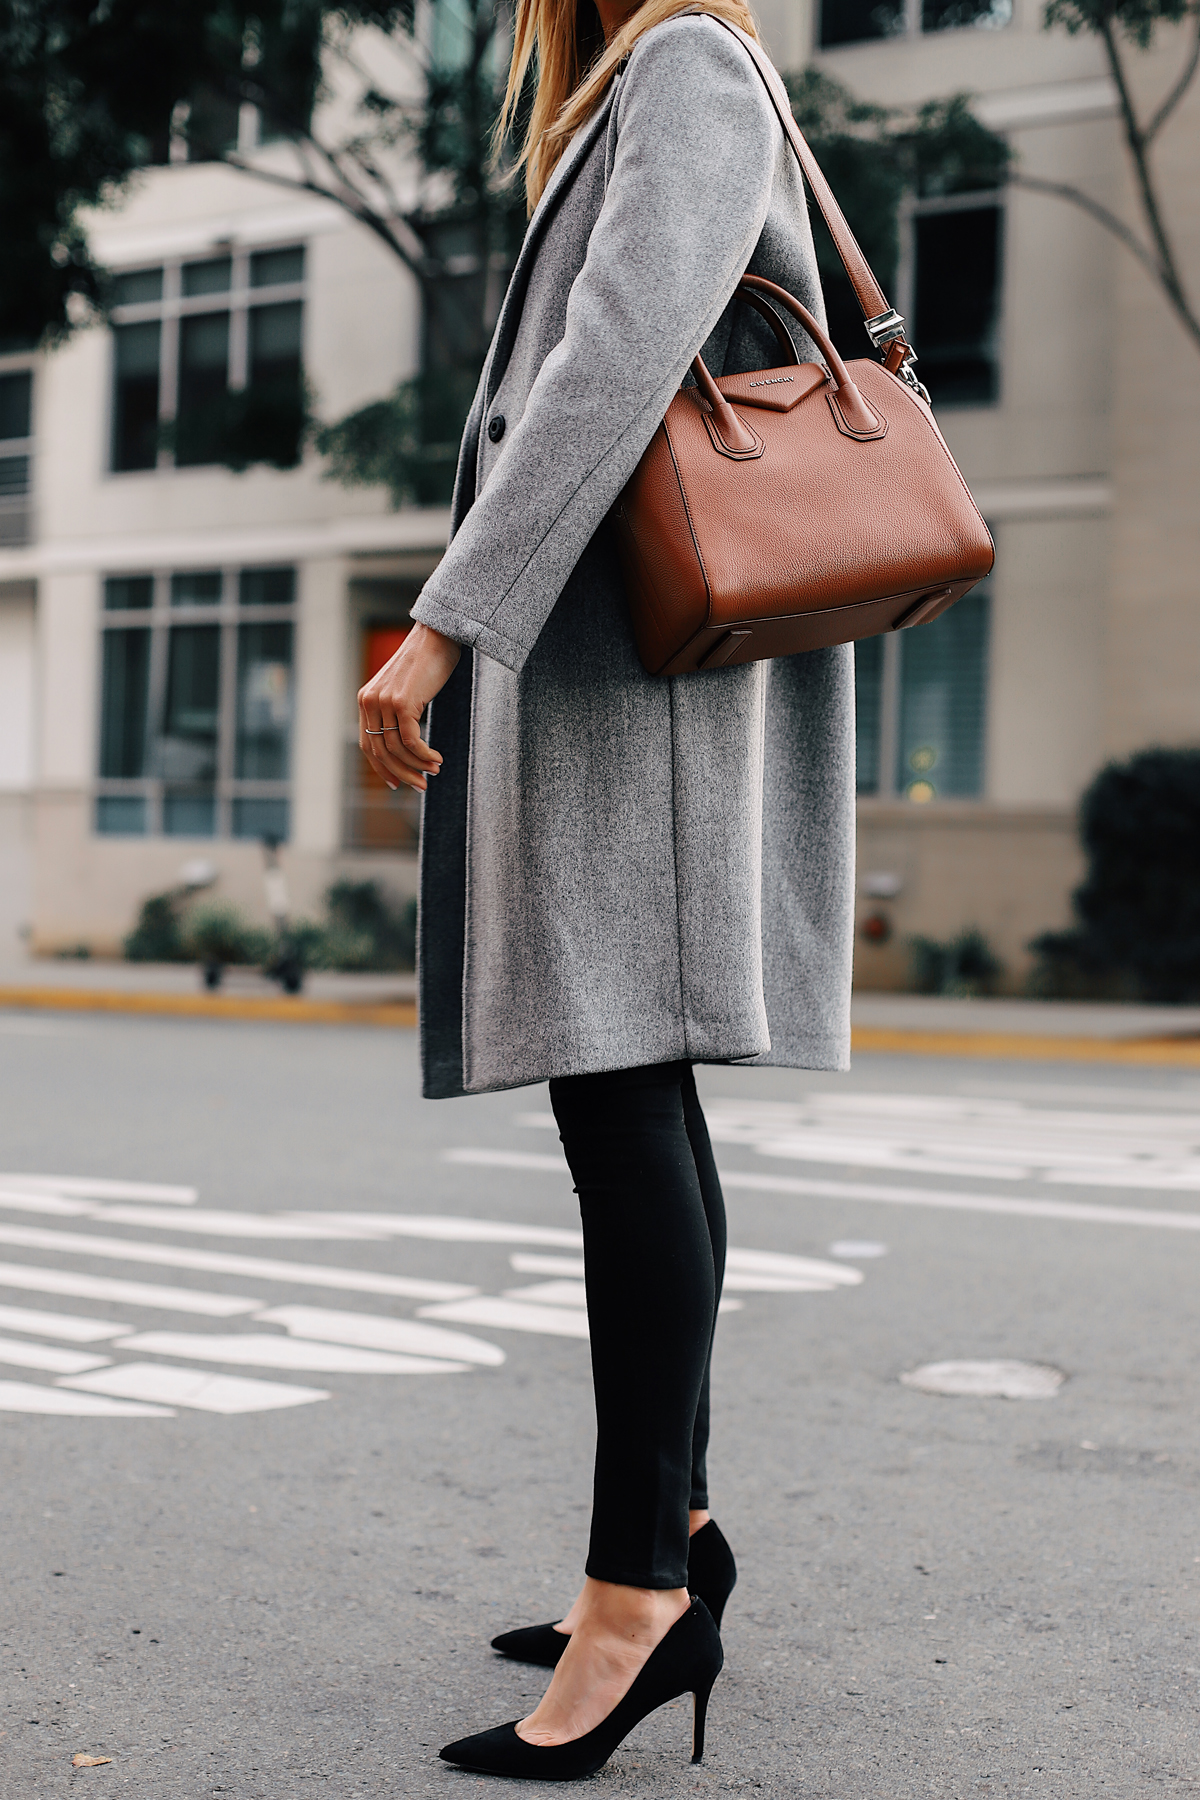 Fashion Jackson Wearing Topshop Grey Wool Coat Black Skinny Jeans Black Pumps Givenchy Antigona Satchel Fashion Jackson San Diego Fashion Blogger Street Style